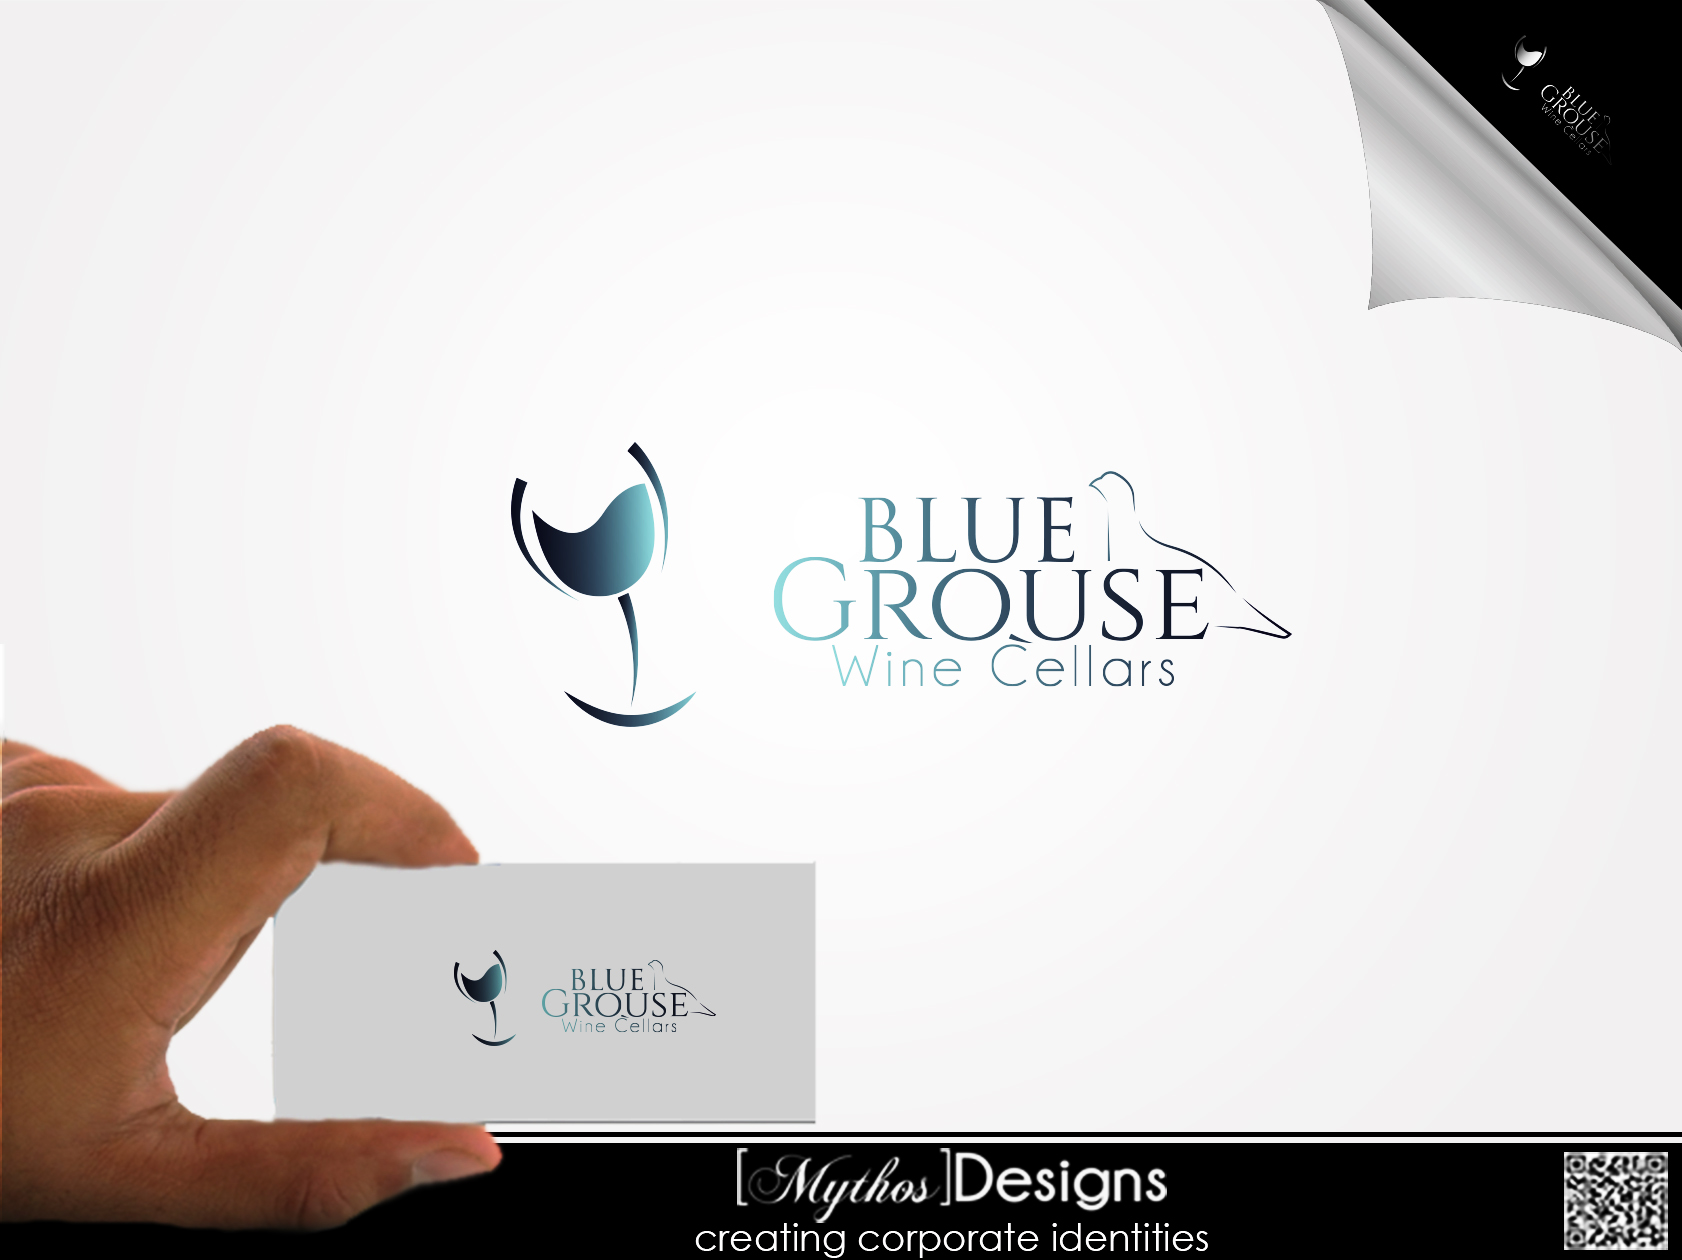 Logo Design by Mythos Designs - Entry No. 132 in the Logo Design Contest Creative Logo Design for Blue Grouse Wine Cellars.